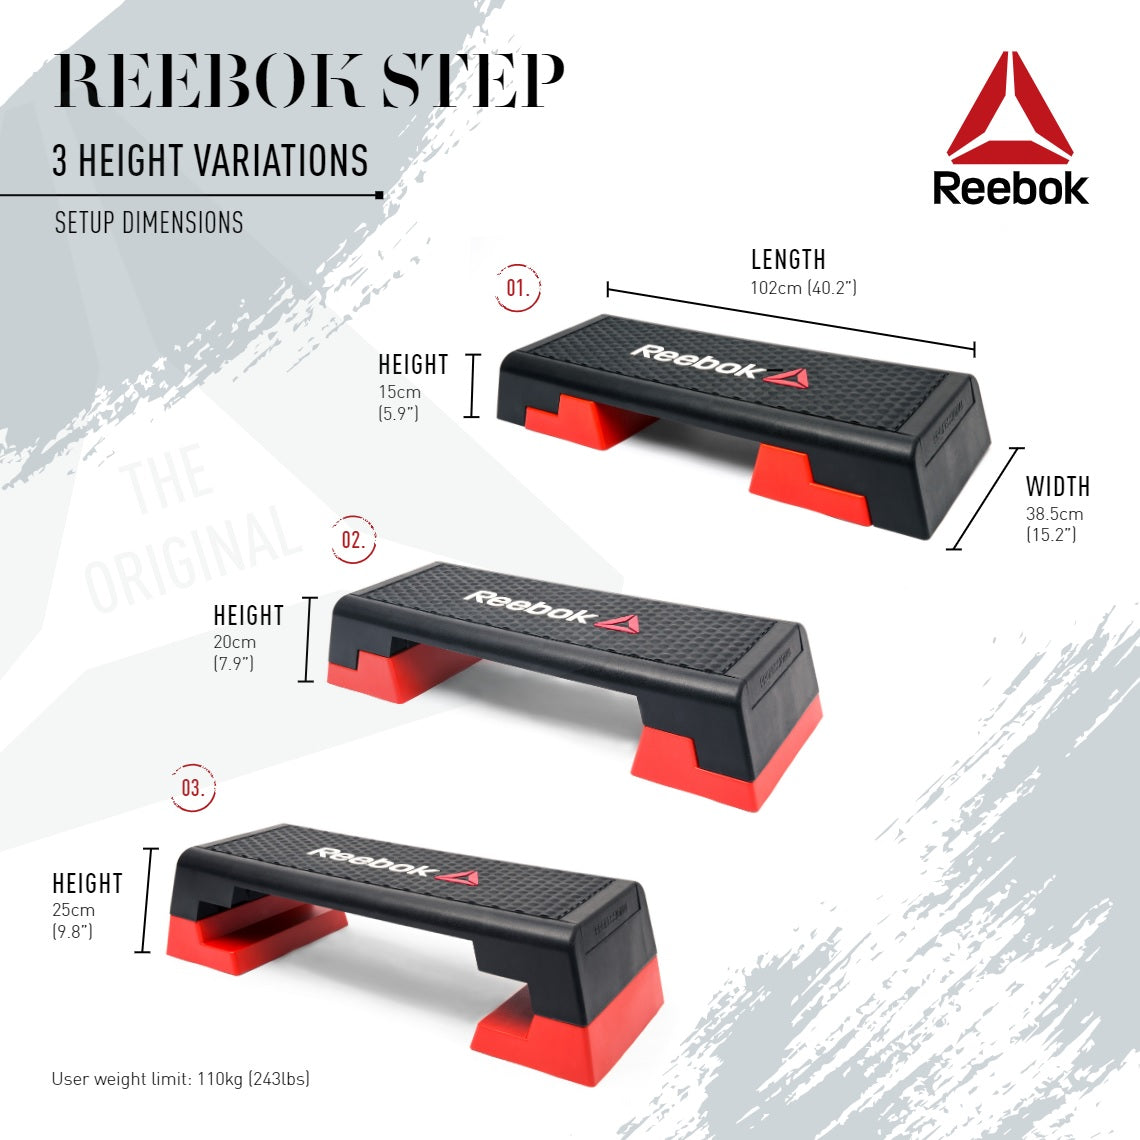 Reebok Professional Commercial Aerobic Step